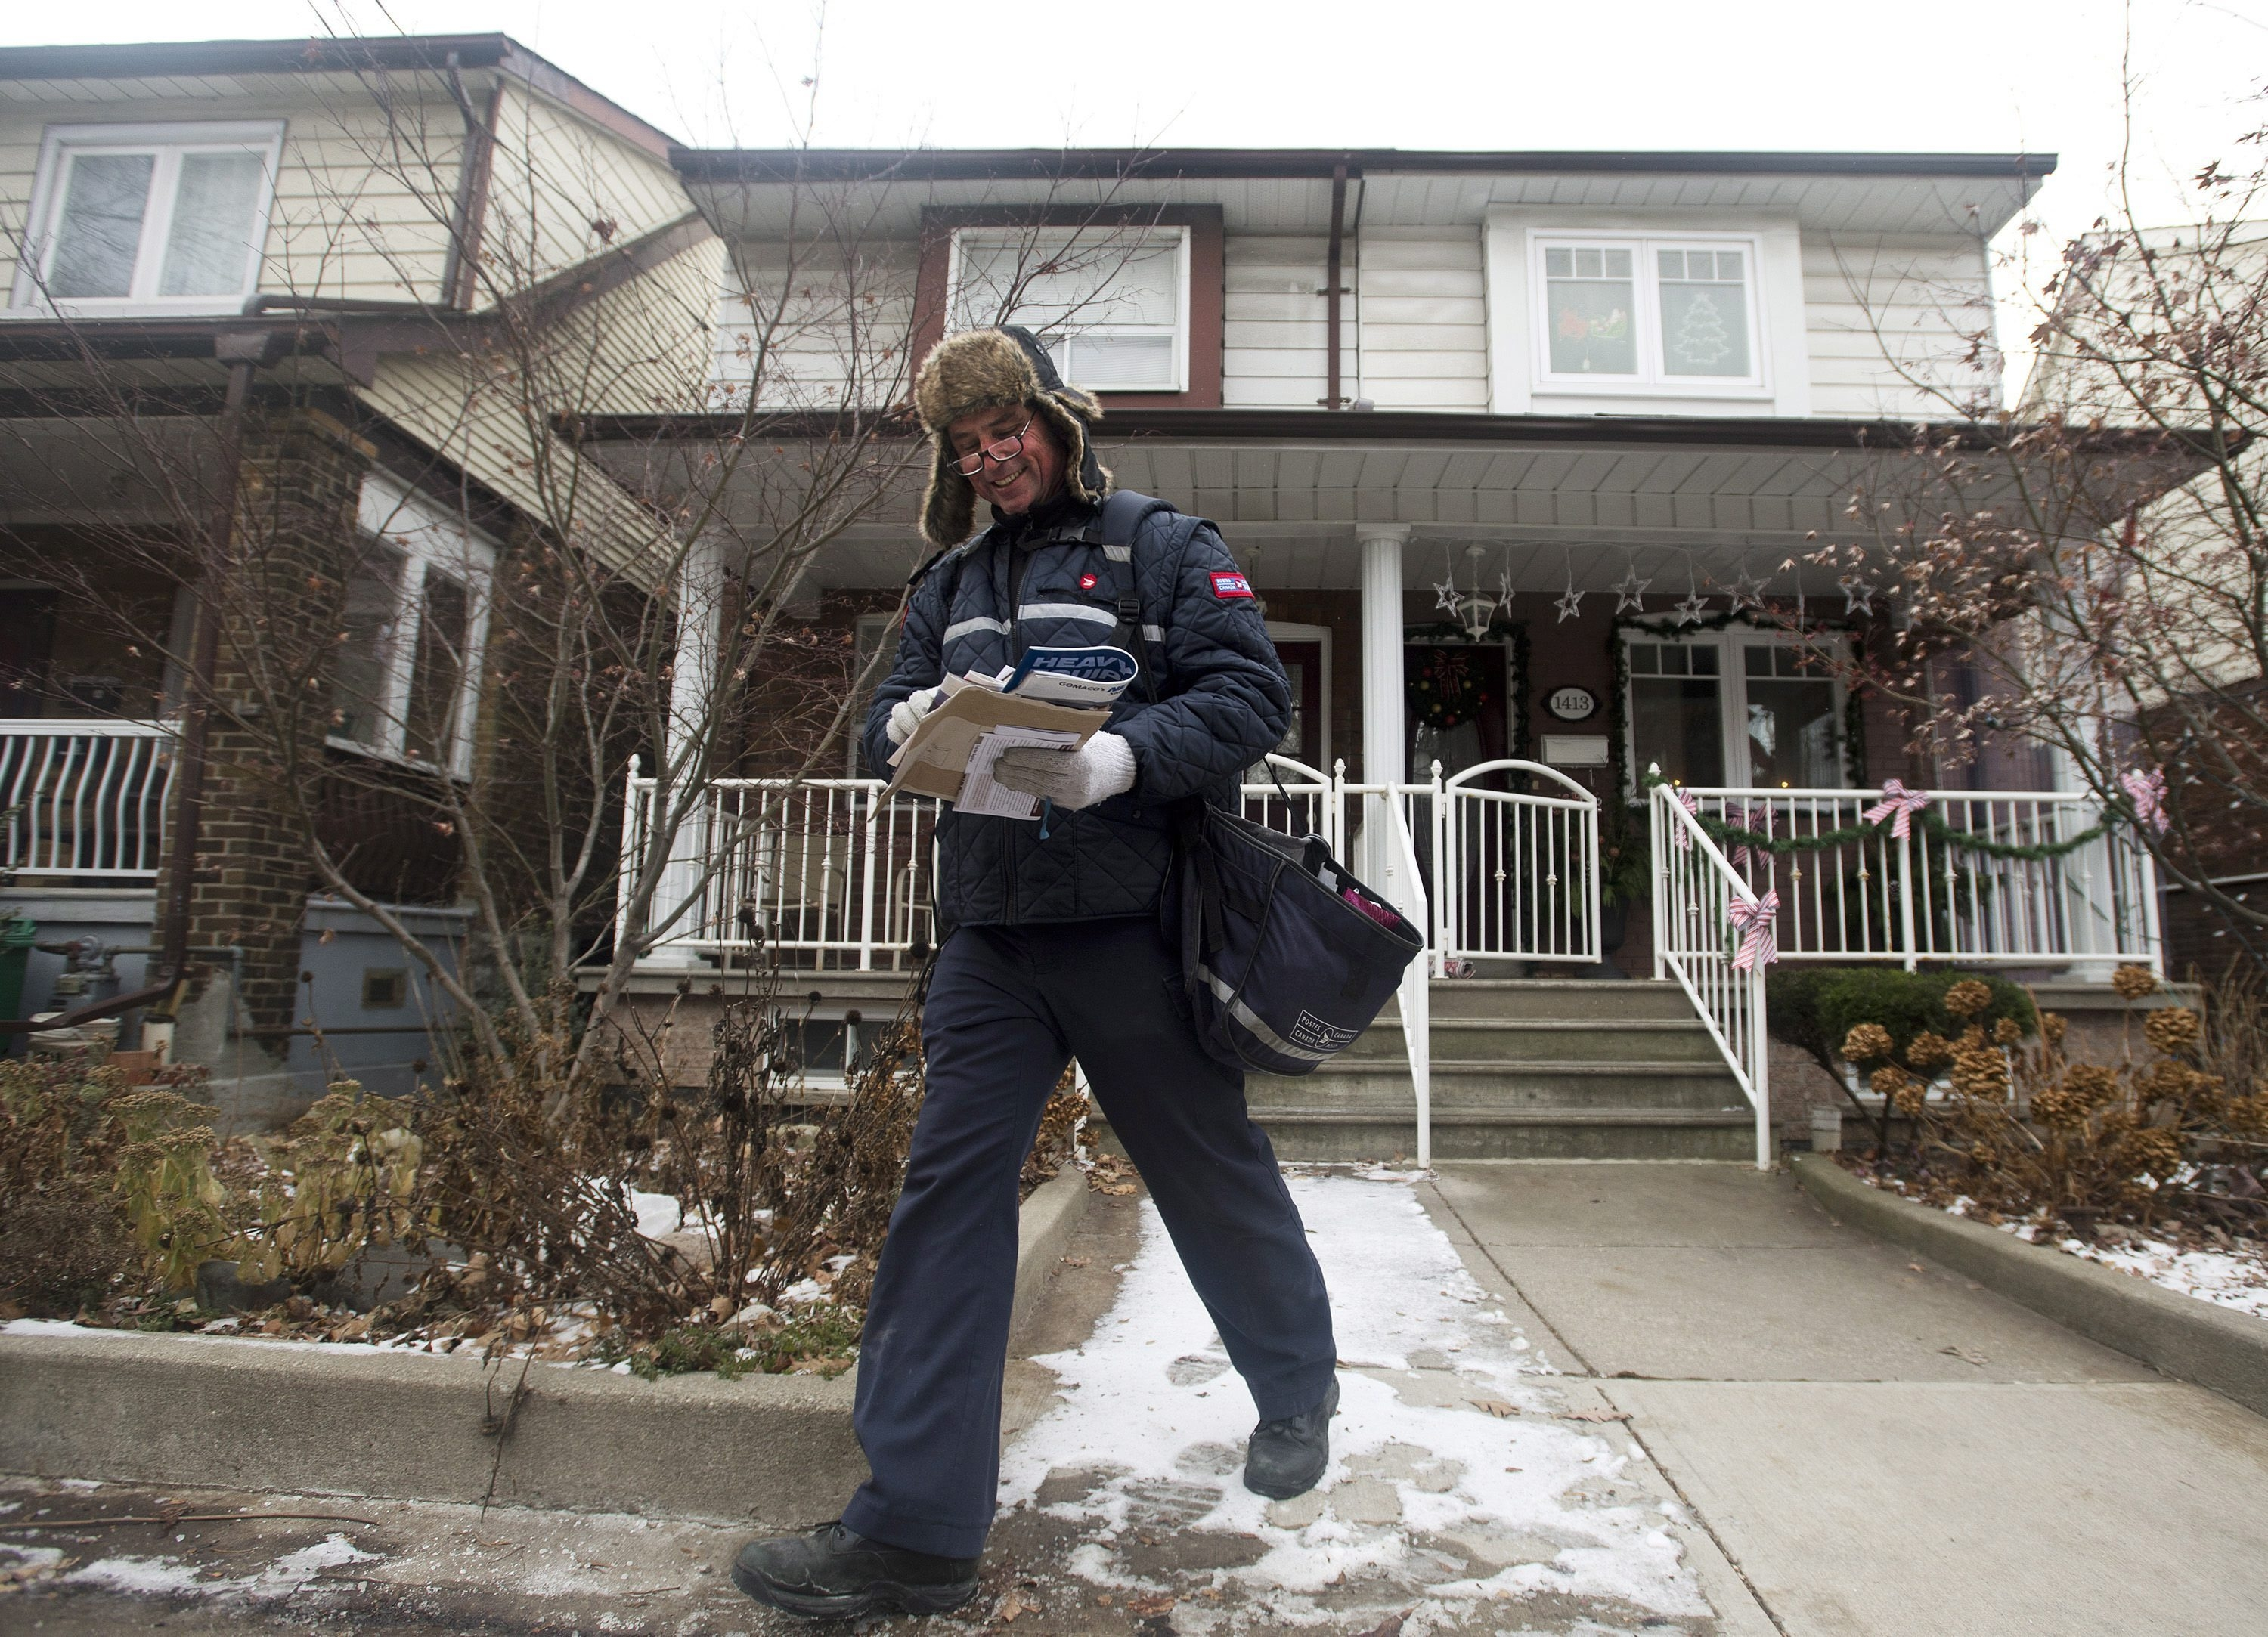 A Canada Post employee delivers mail and parcels to residential homes in Toronto on Wednesday. Canada's postal service plans som drastic changes to its service.